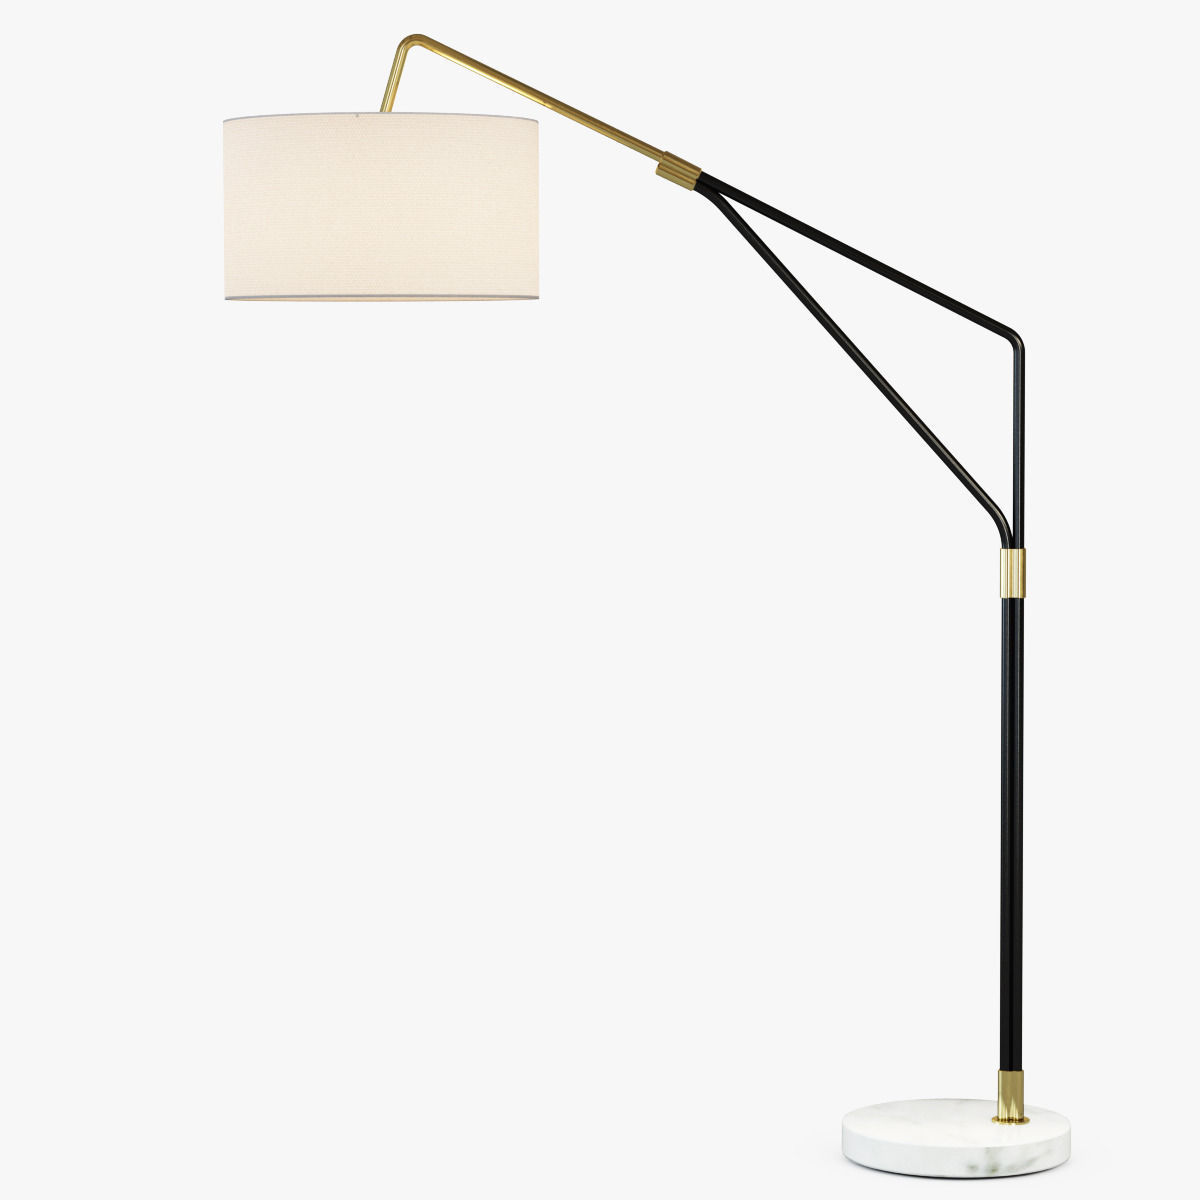 3D model Mid-Century Overarching Floor Lamp | CGTrader